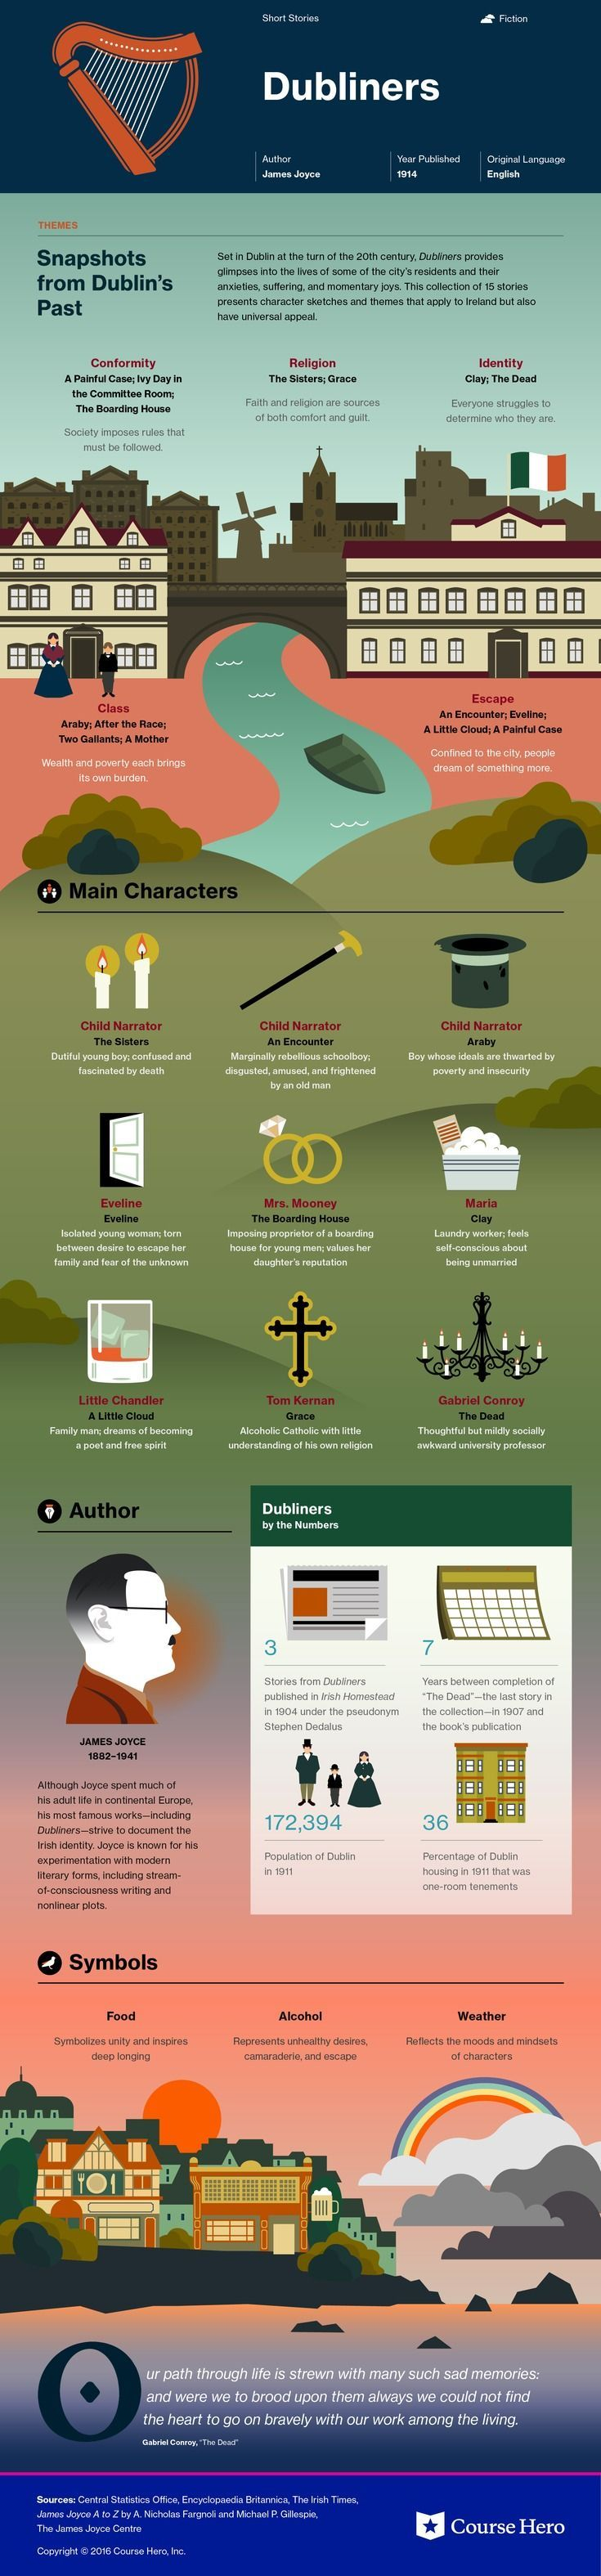 Dubliners Infographic   Course Hero